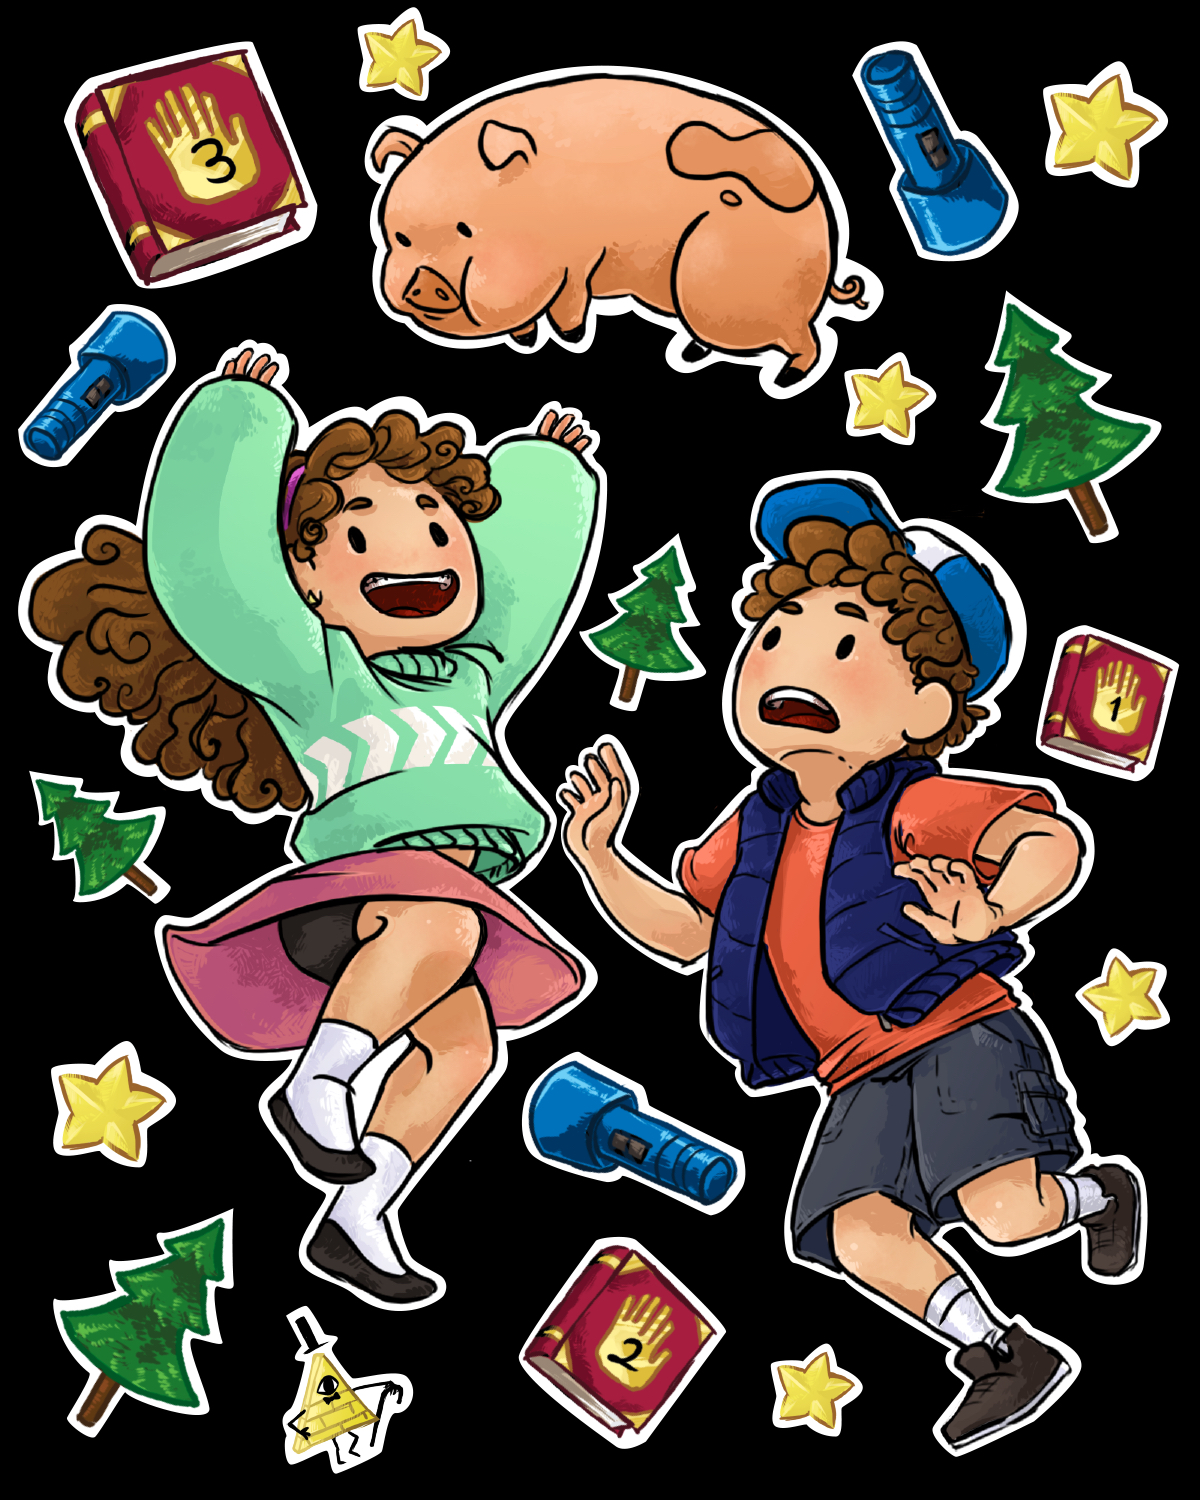 Gravity falls illustration